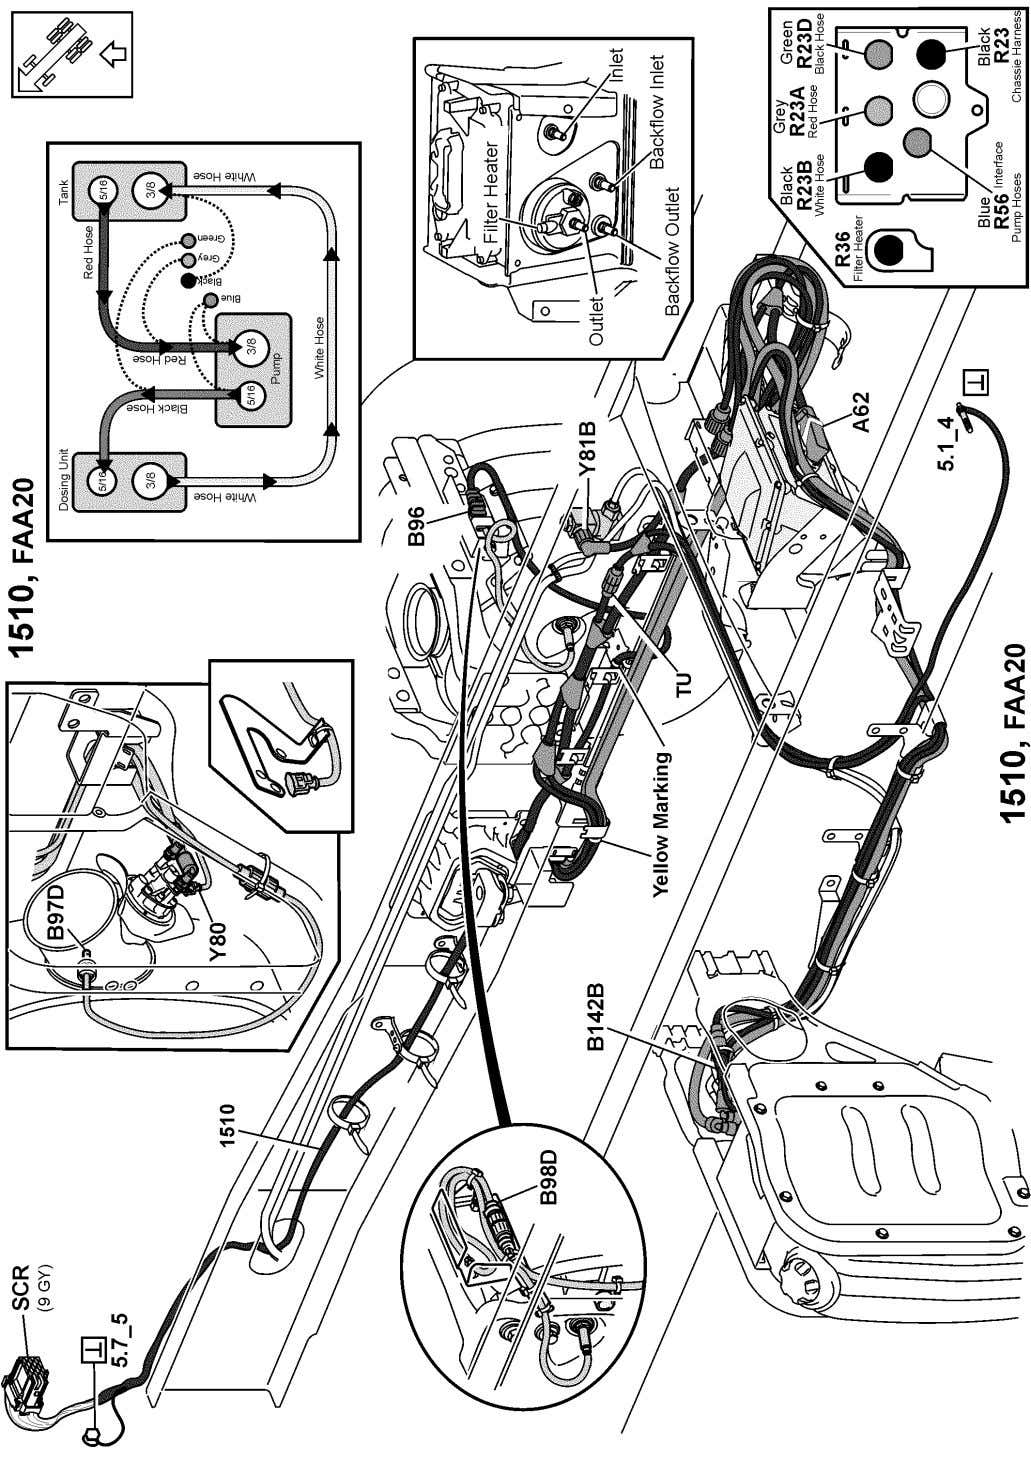 T3071671 Wiring diagram Page 223 (298)